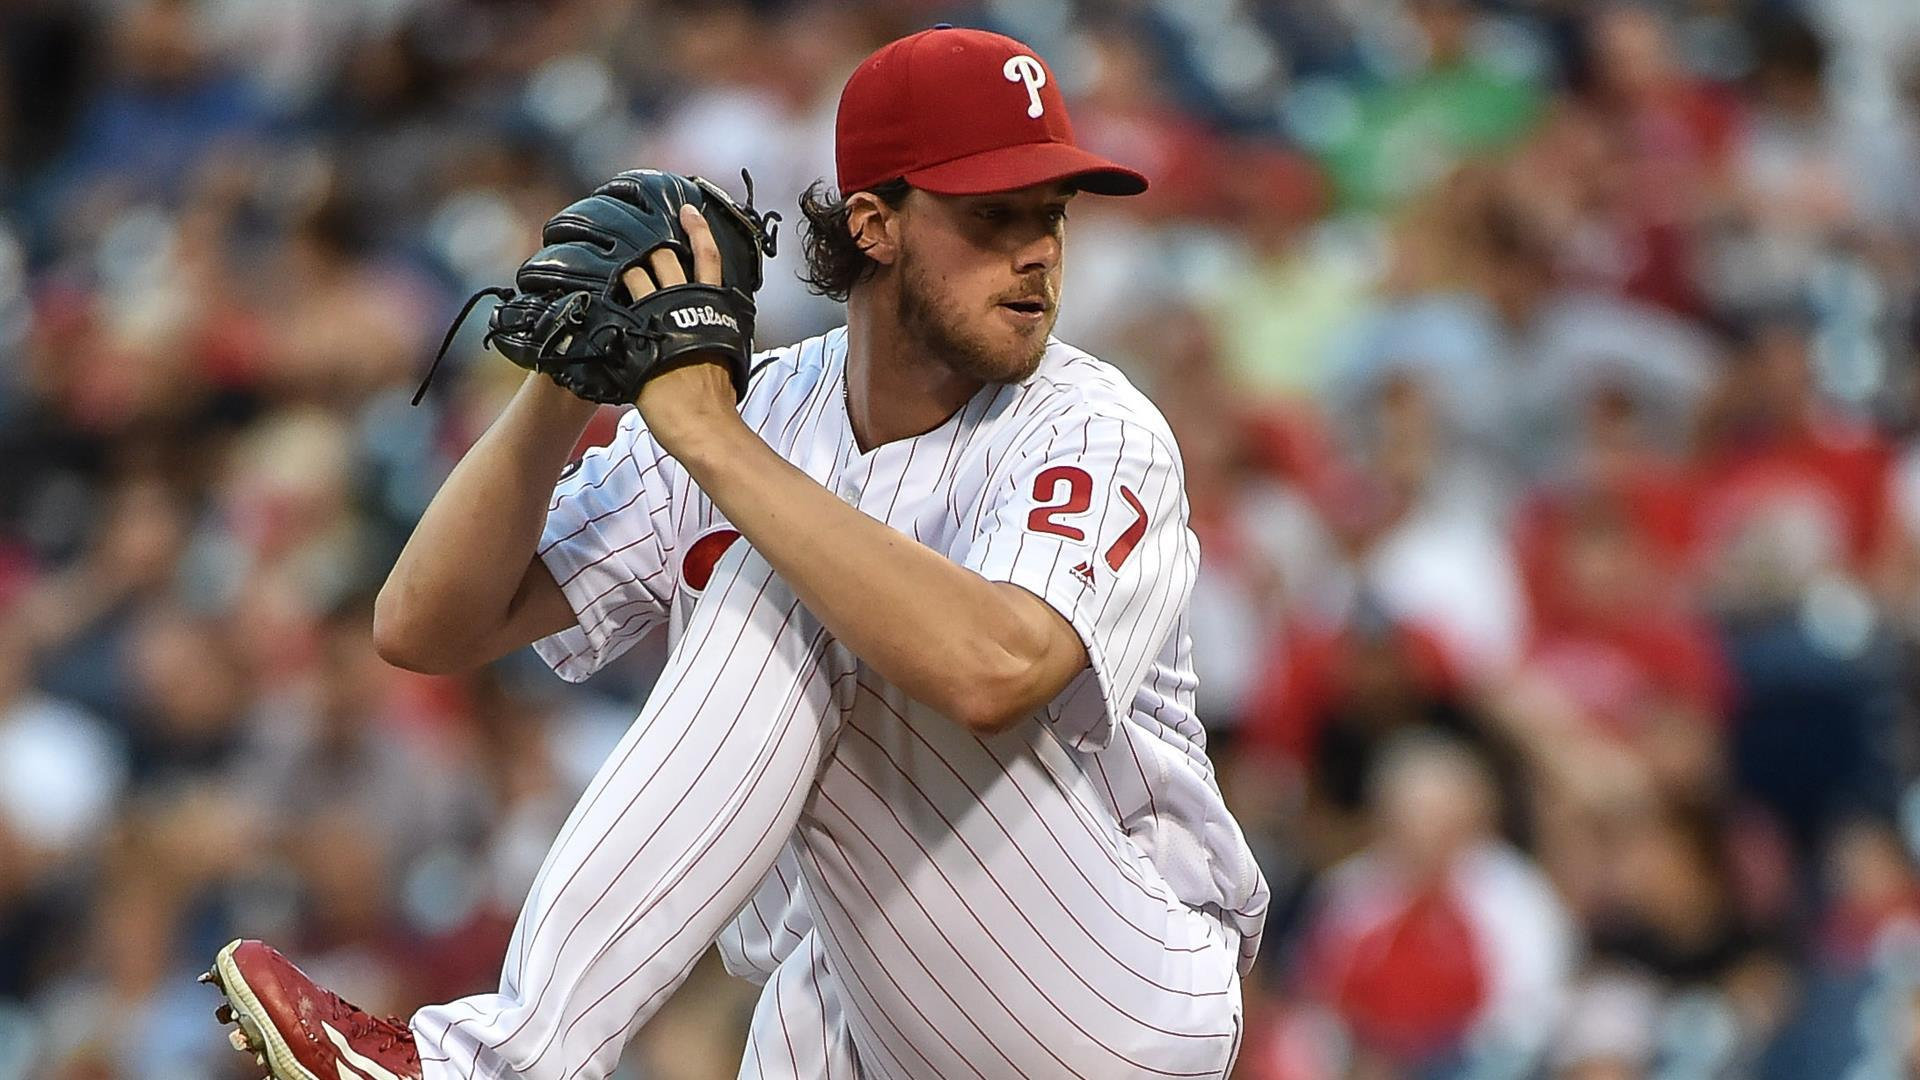 Aaron Nola Wallpaper 10+ - Page 2 of 3 - hdwallpaper20.com